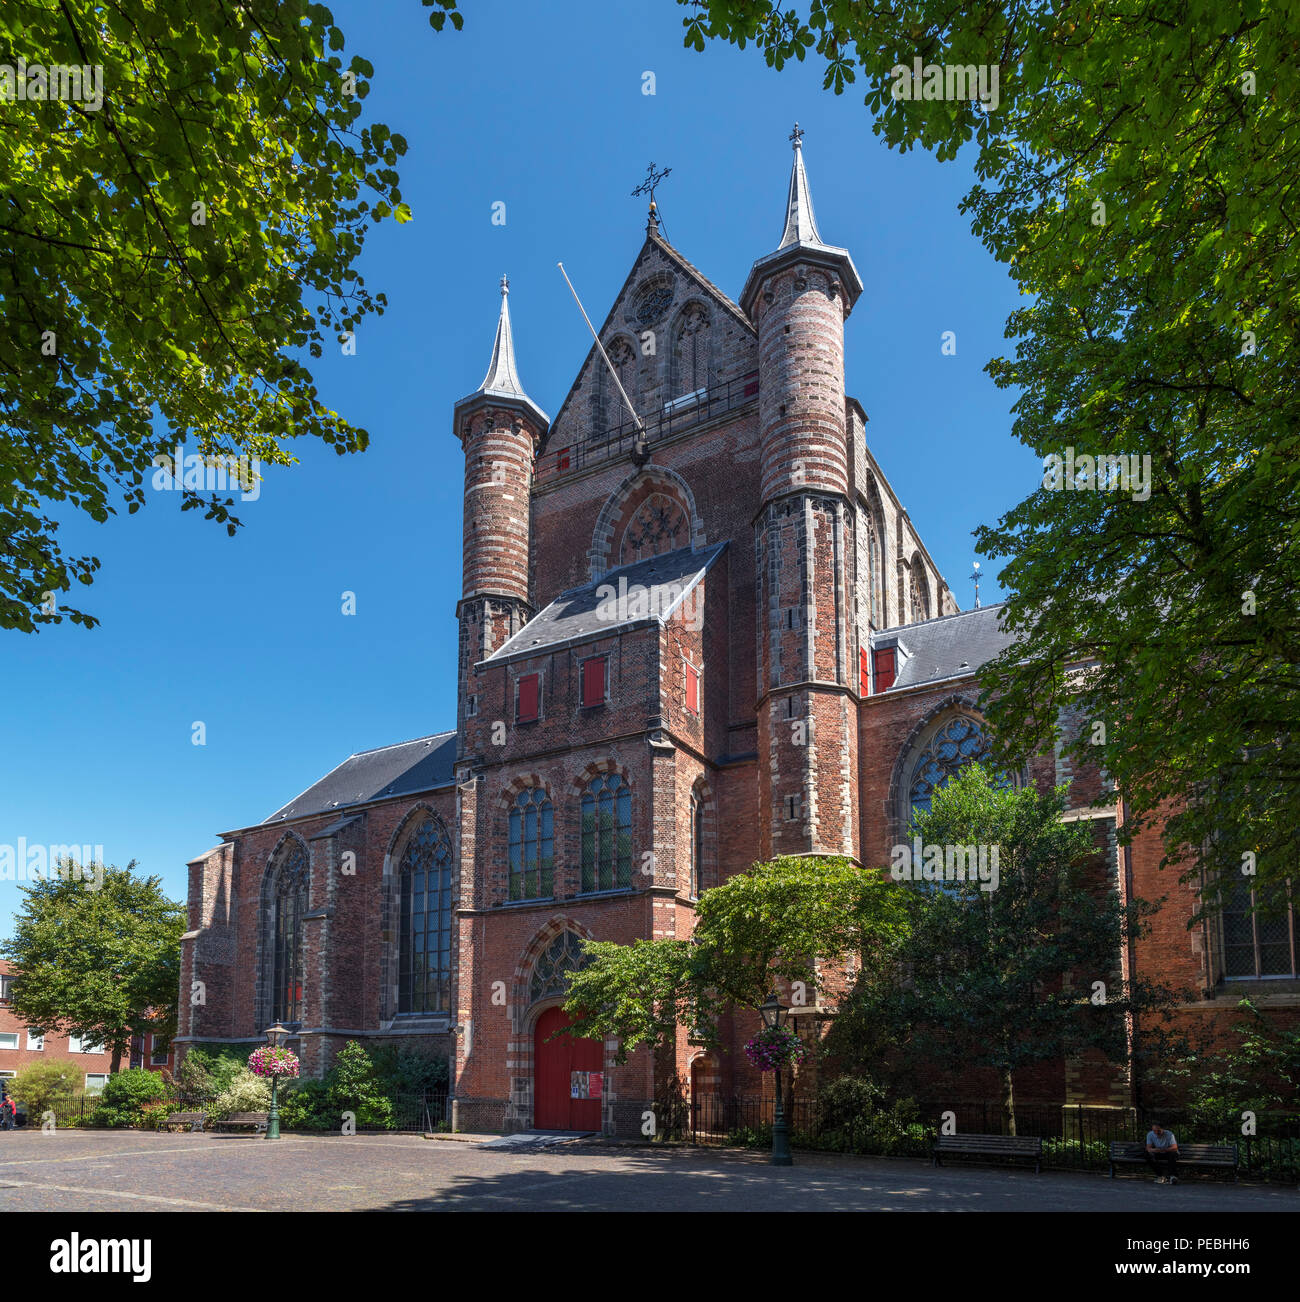 Pieterskerk, Leiden, Zuid-Holland (South Holland), Netherlands Stock Photo